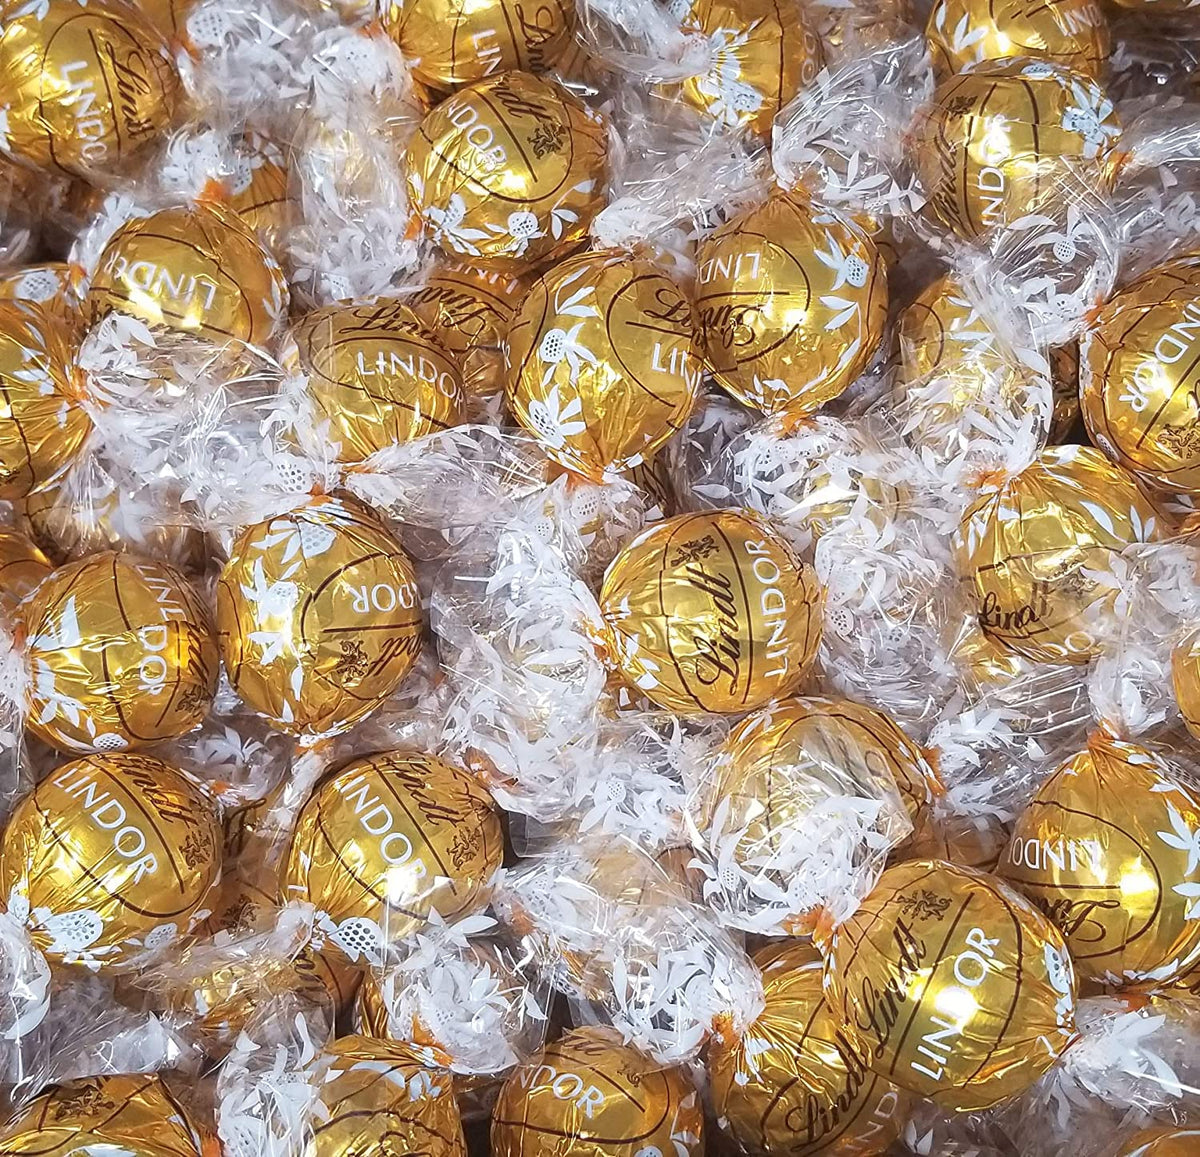 Lindt Caramel Milk Chocolate Truffles (Sold Individually)